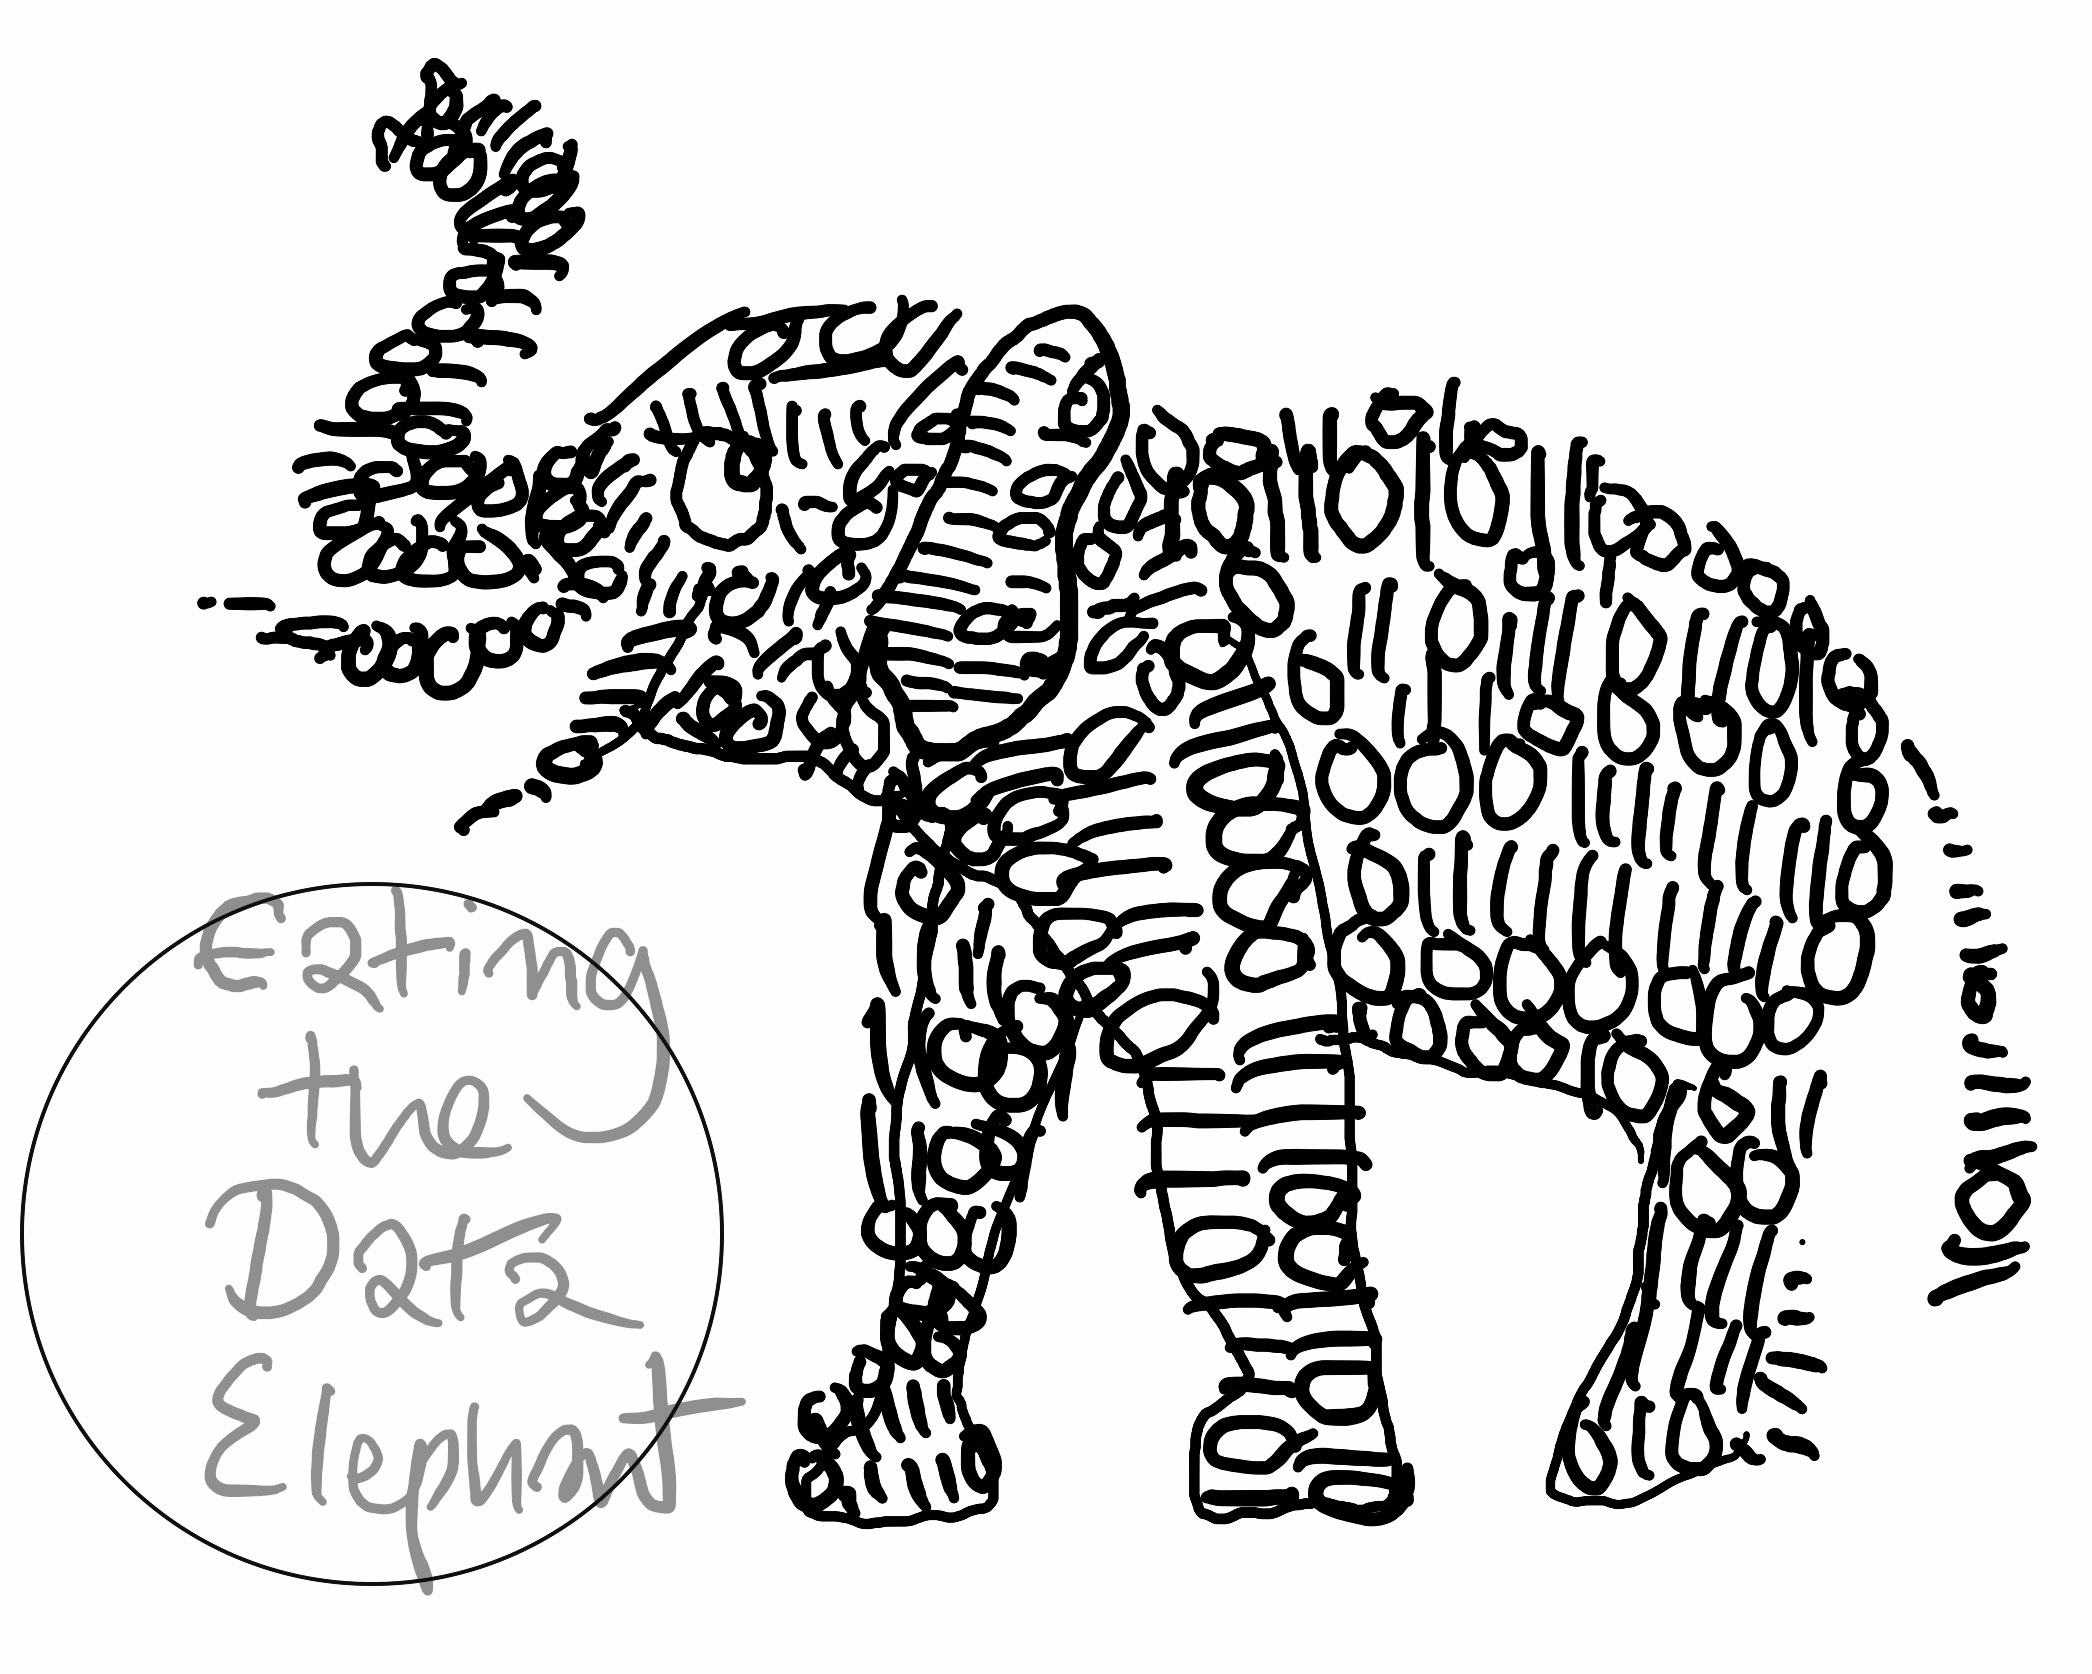 Eating the Data Elephant - blog post